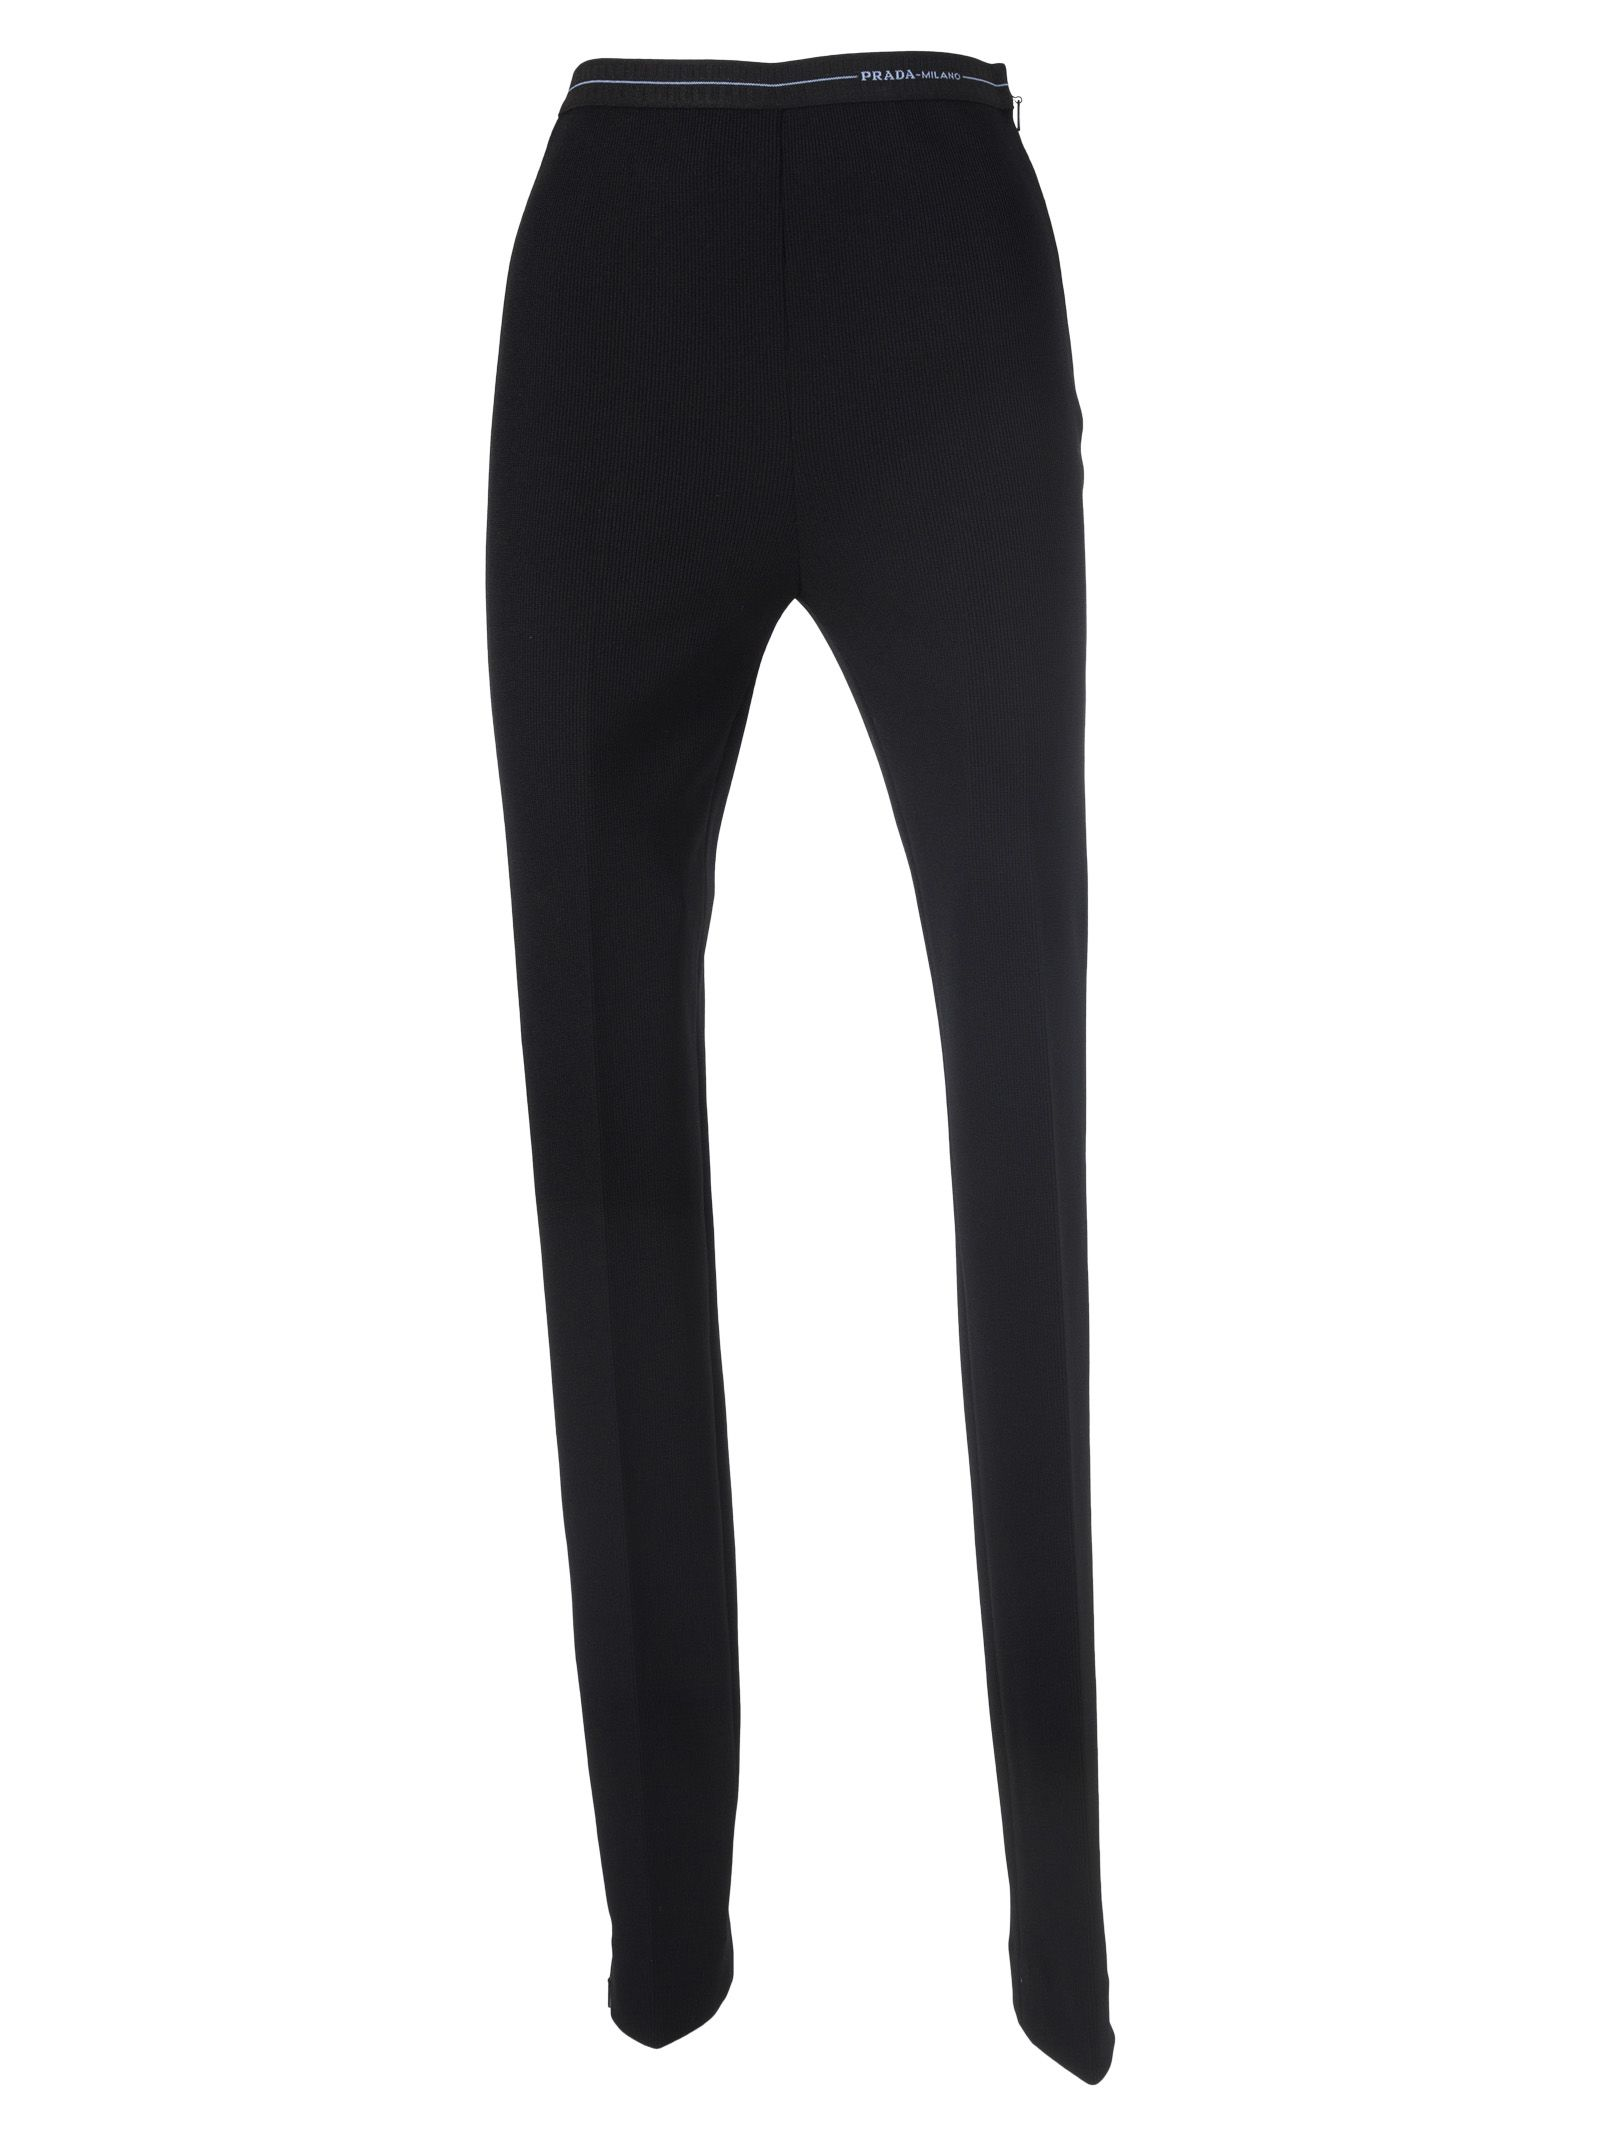 Prada High Waisted Skinny Leggings